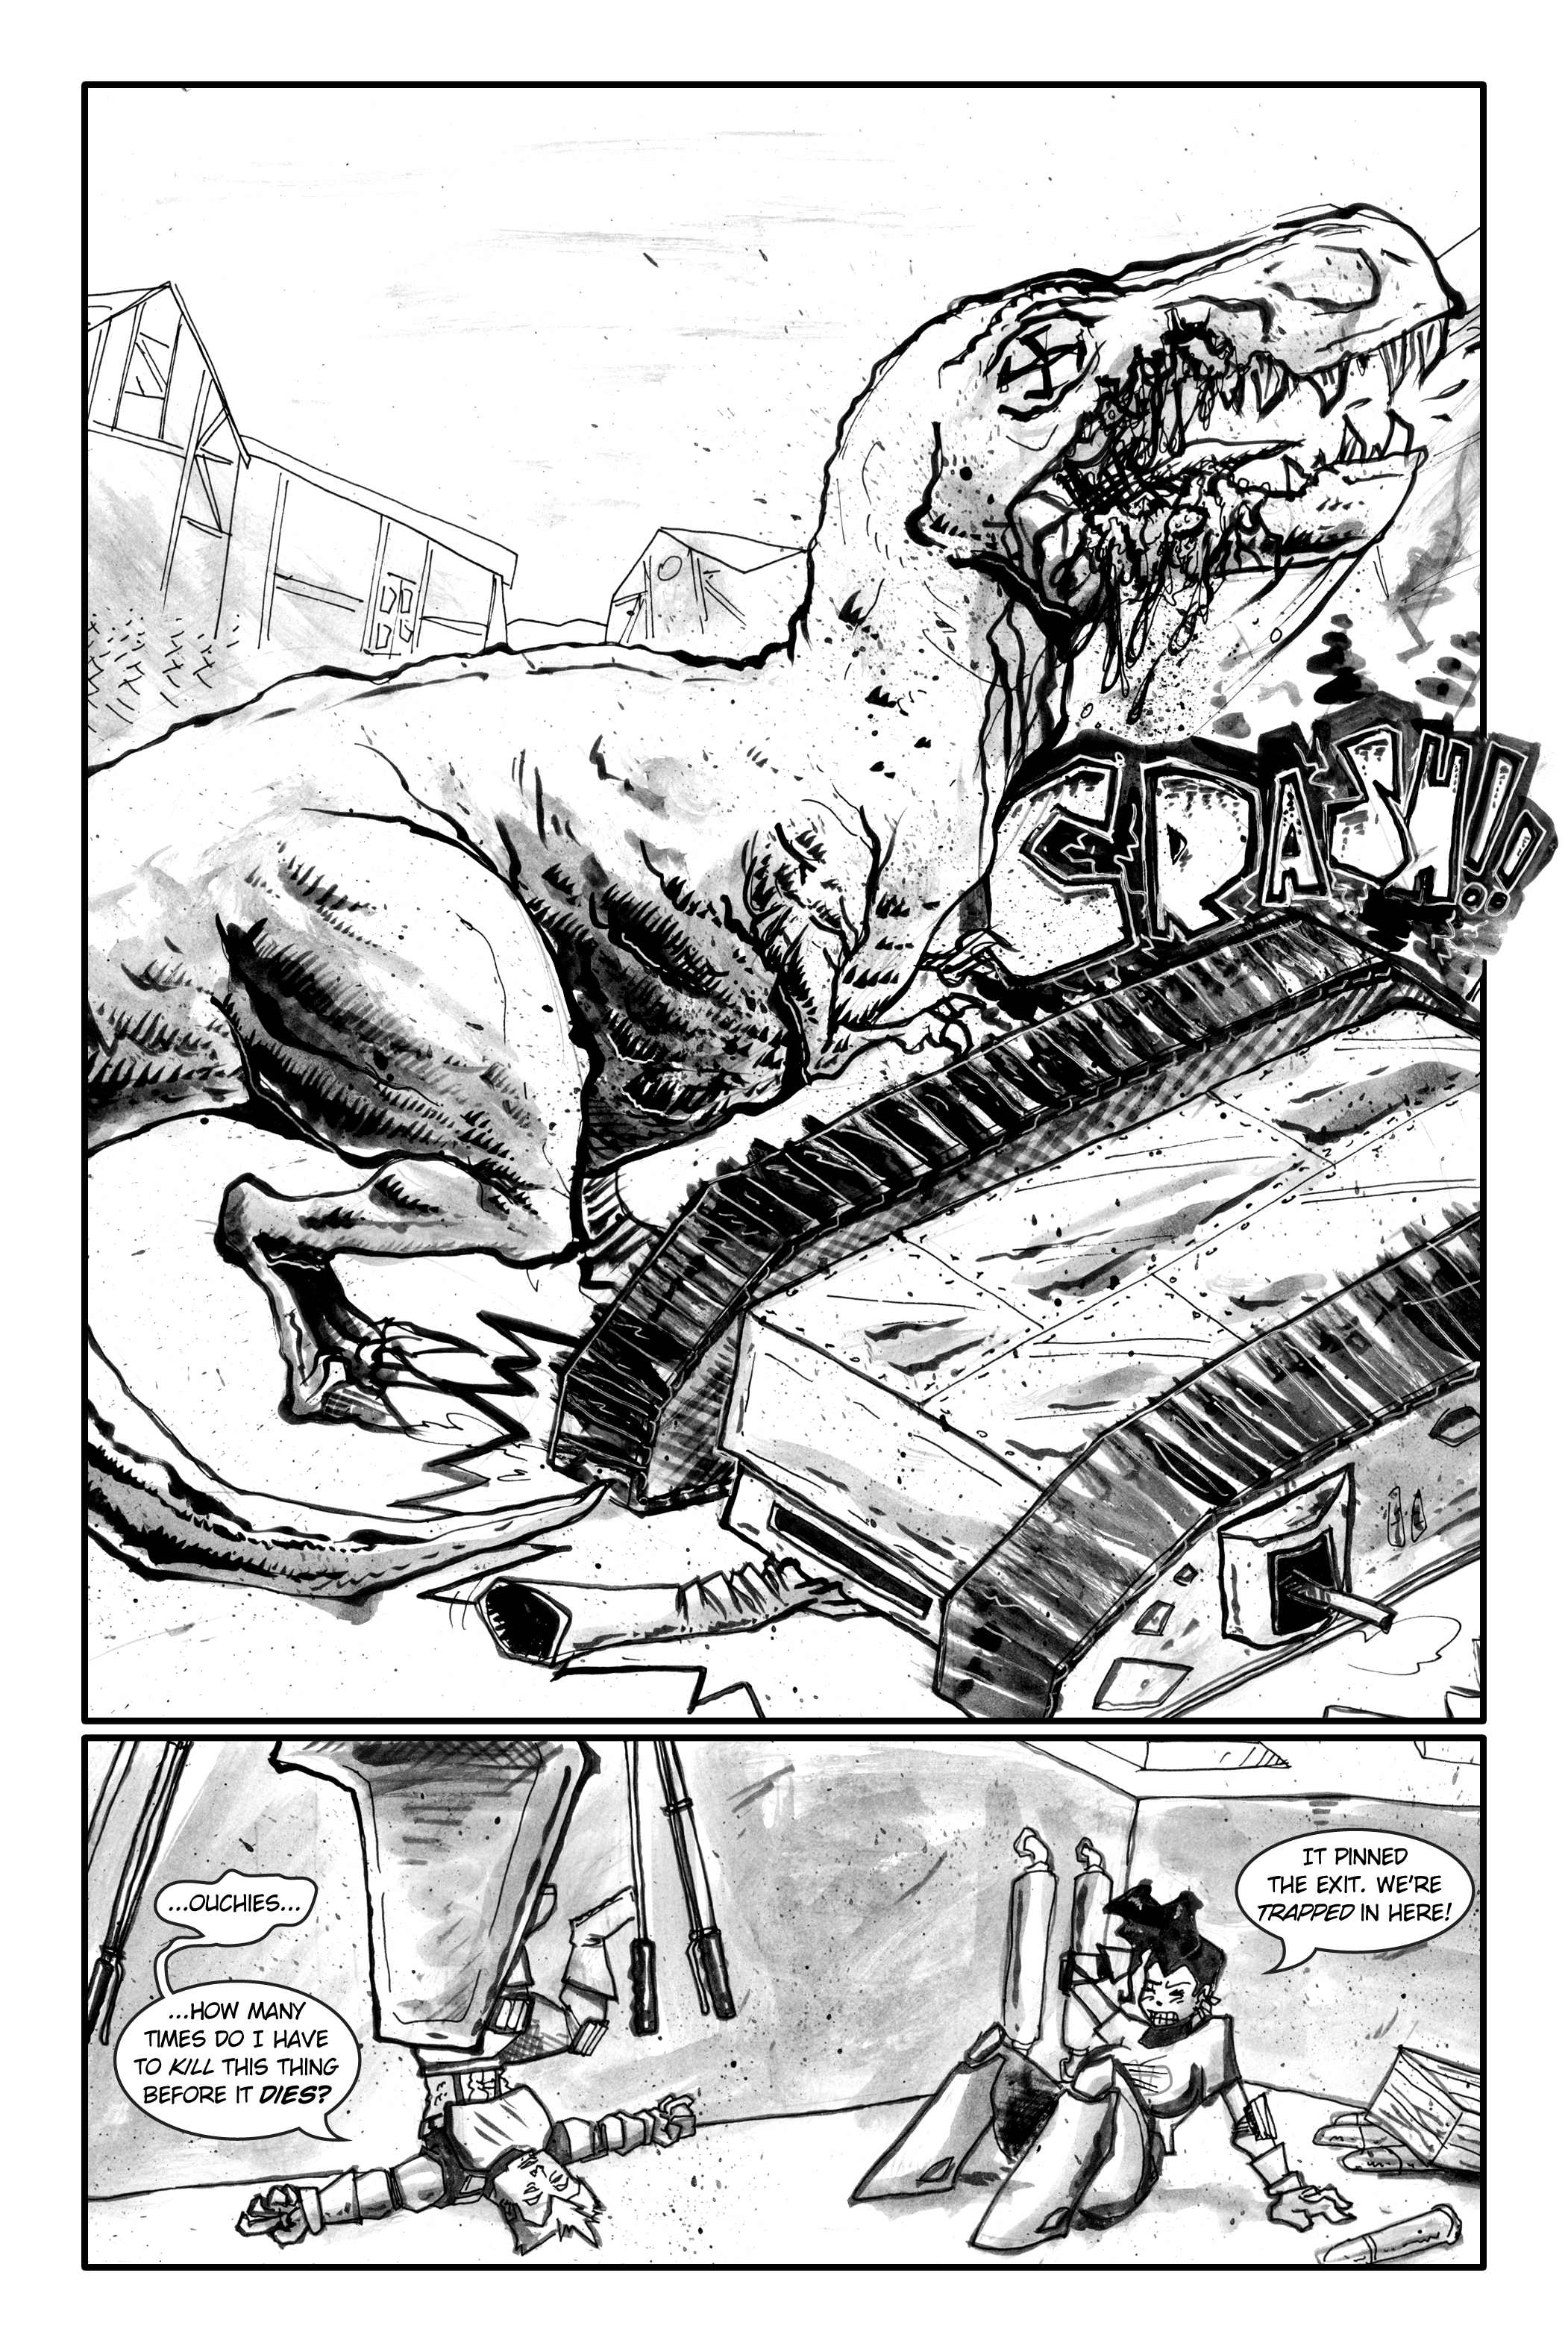 Issue 3, Page 10